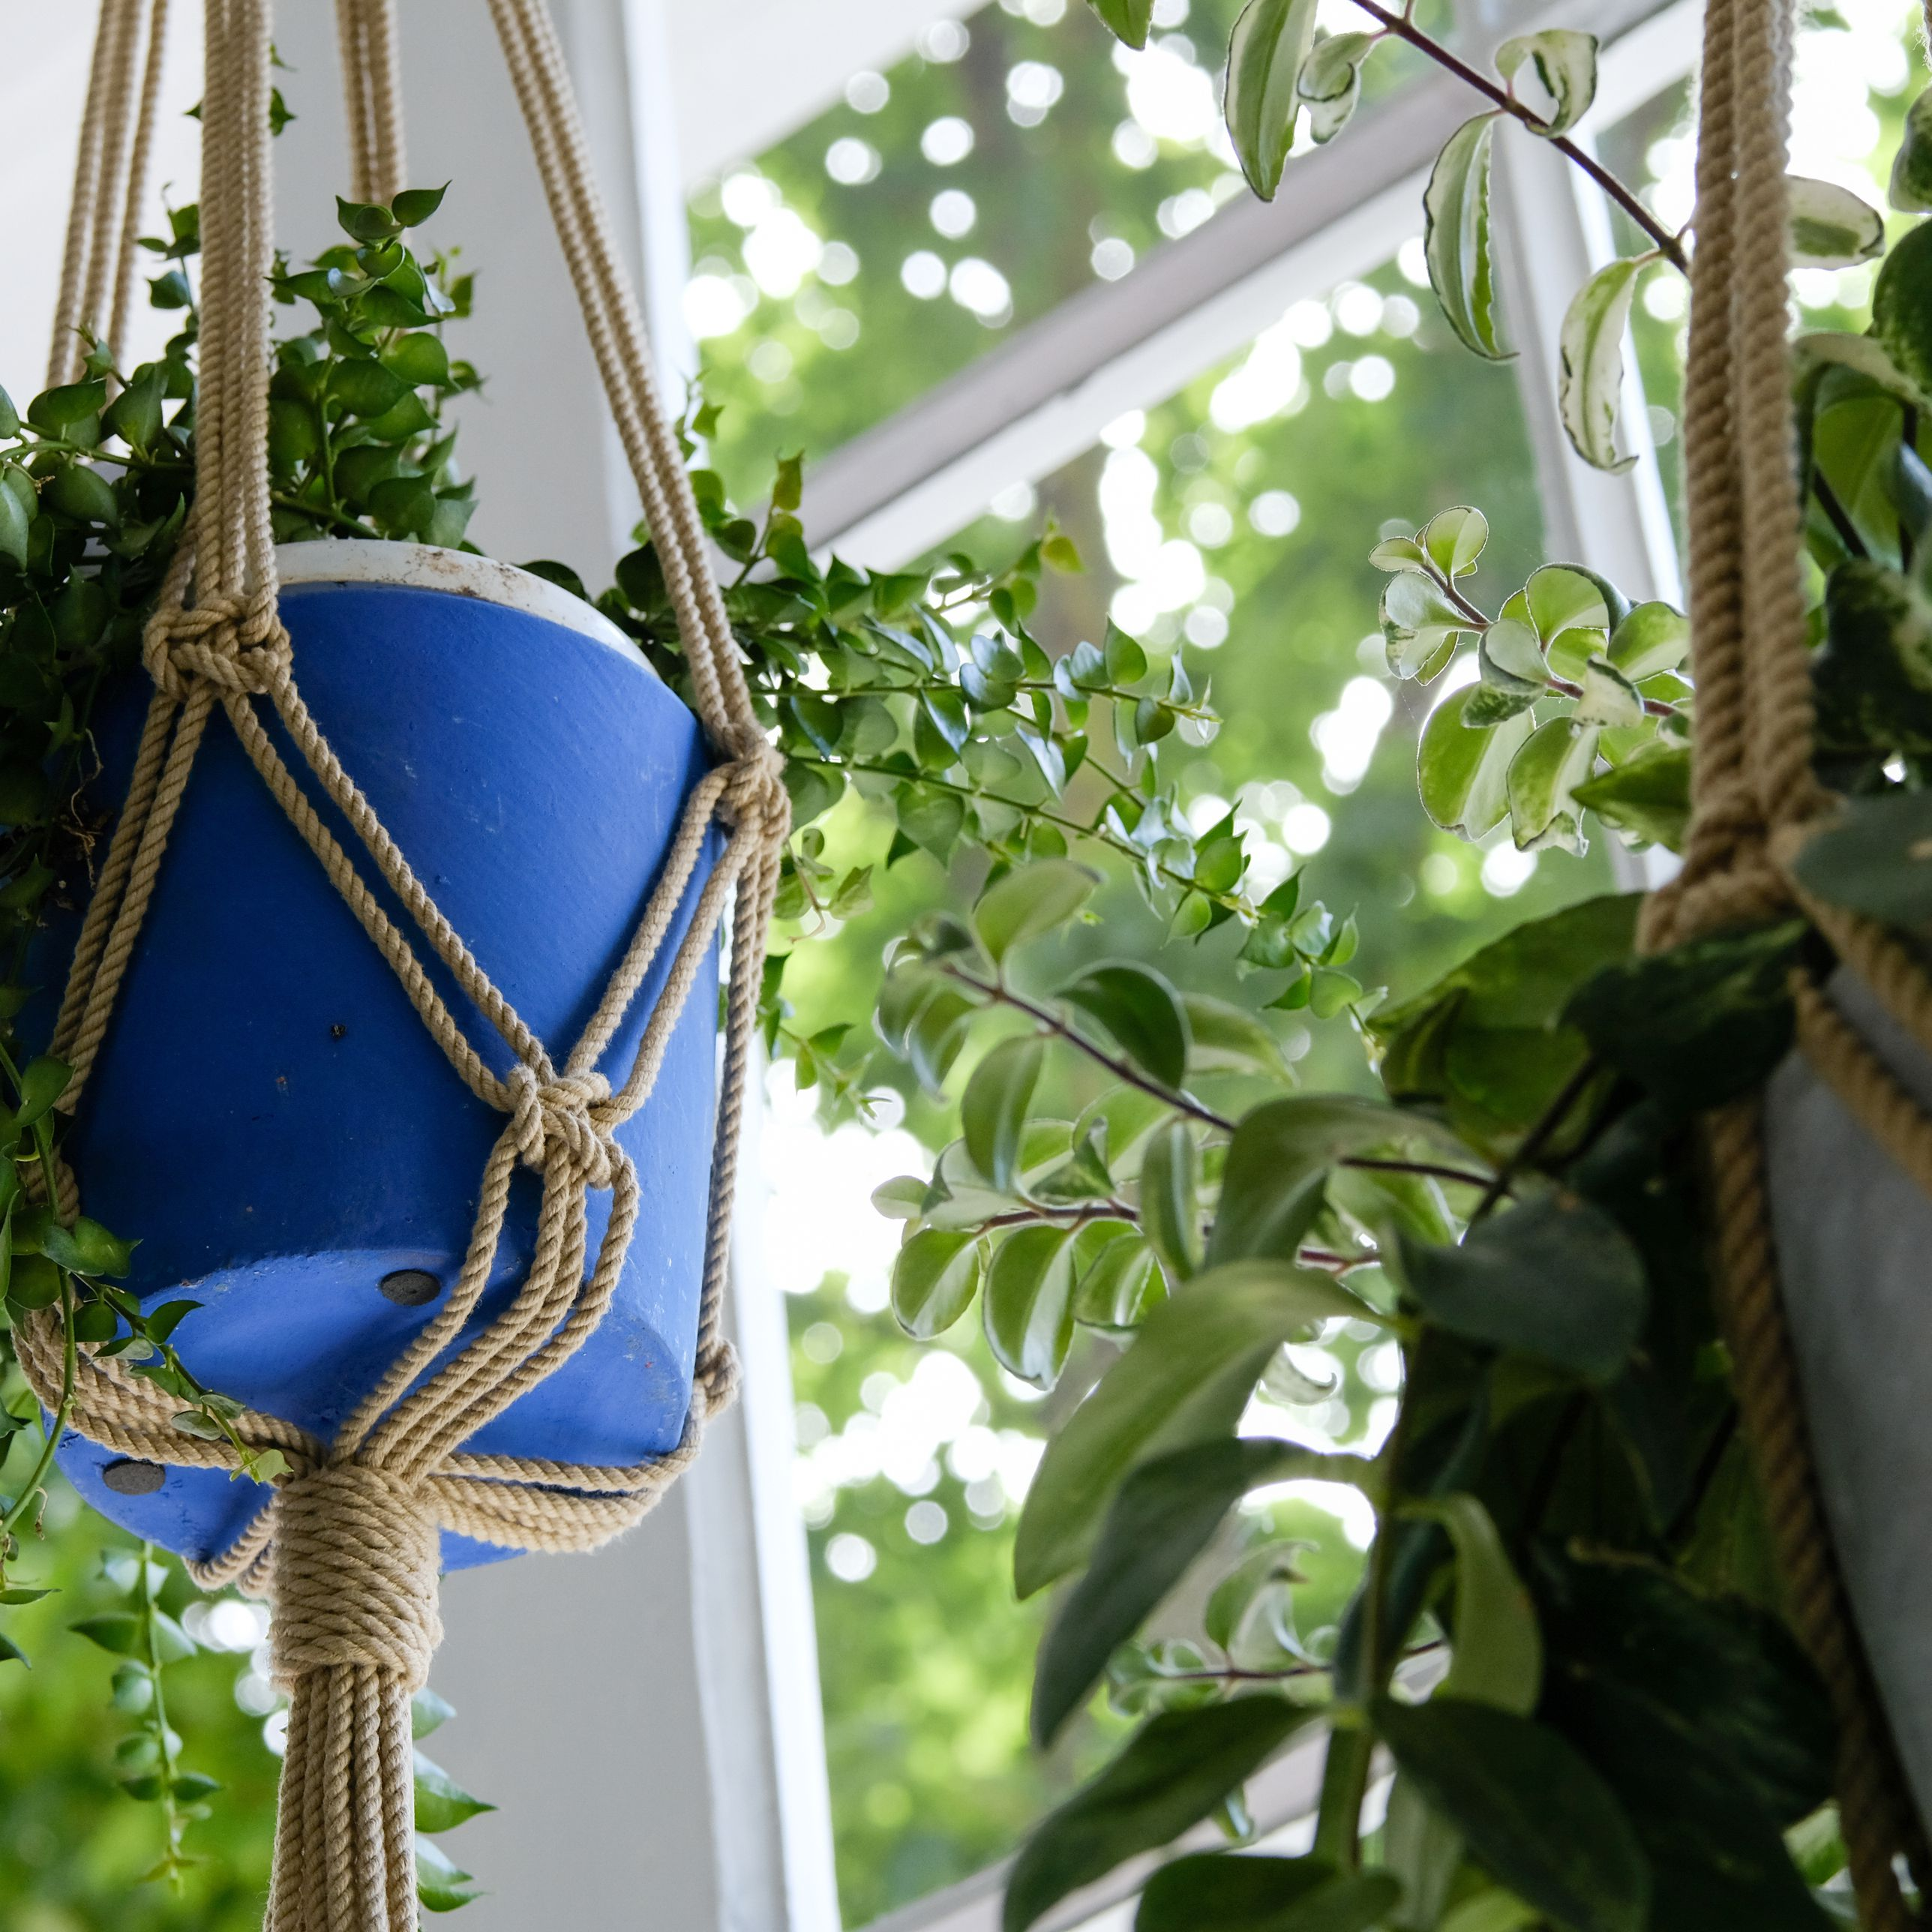 How To Make A Macrame Hanging Plant Holder